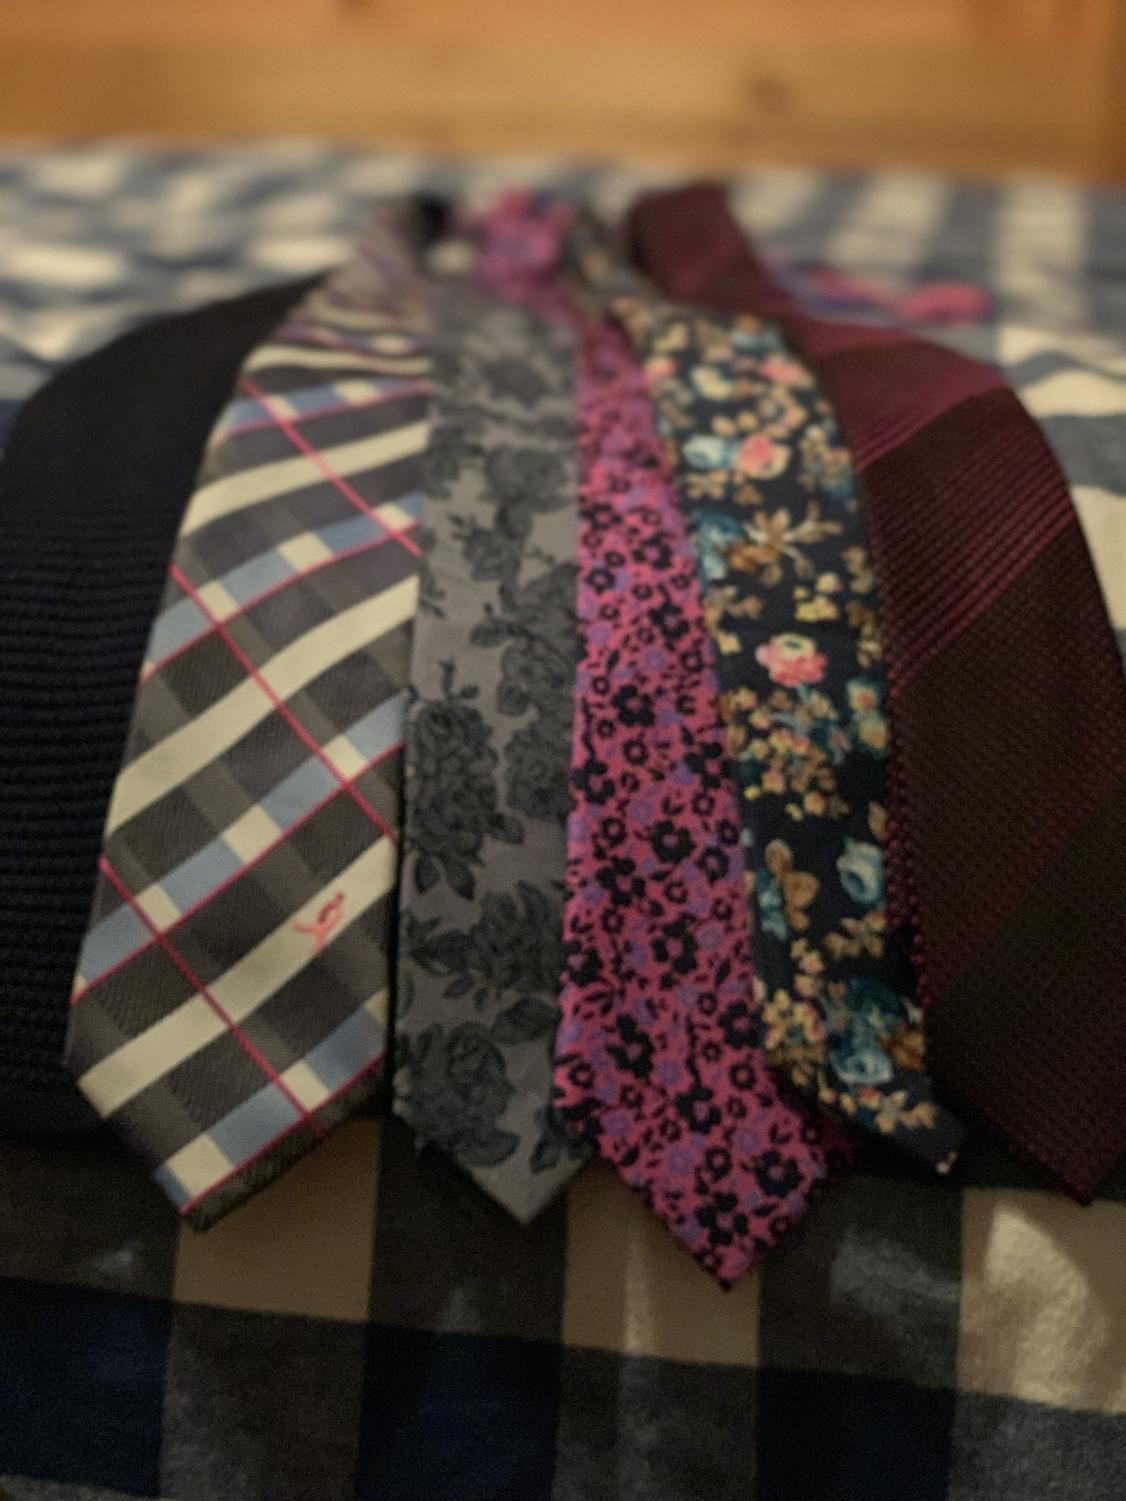 Having a wide selection of ties and tie patterns can help boost how you look and make your outfit even better.